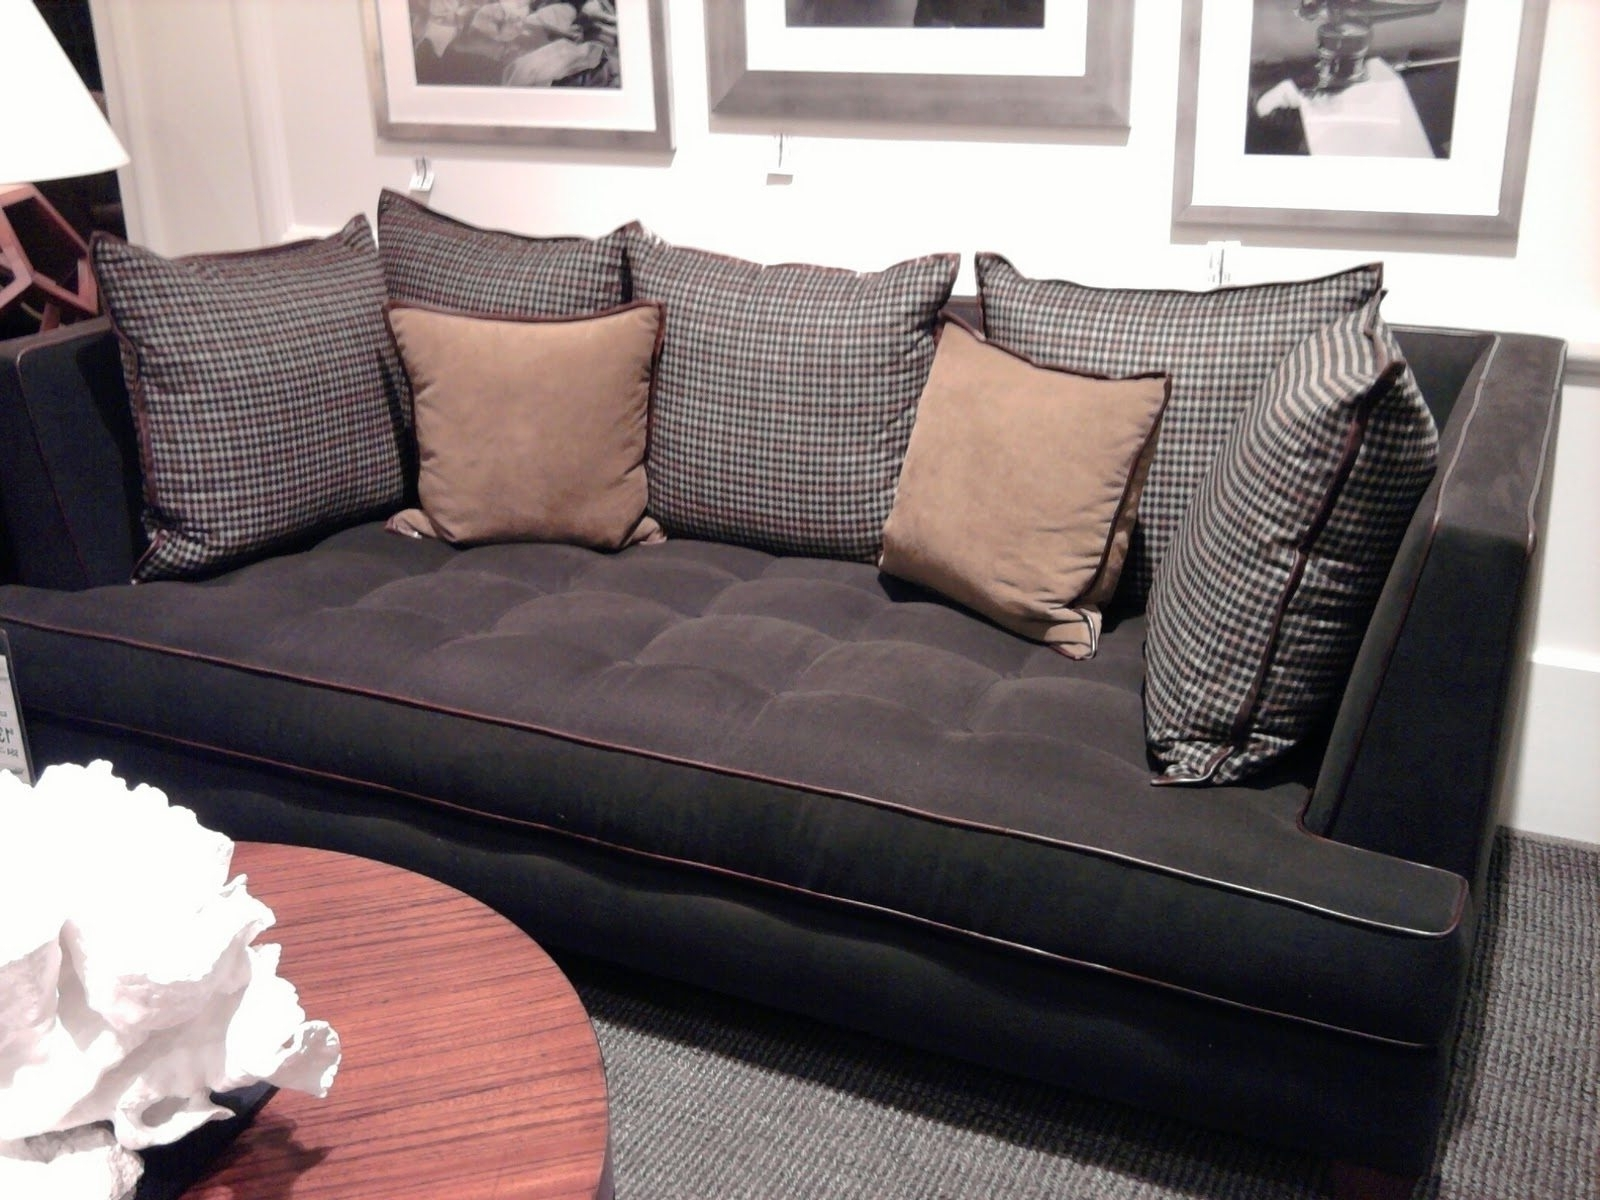 Awesome Deep Couches Design — Cabinets, Beds, Sofas And Regarding Current Wide Sofa Chairs (View 3 of 15)